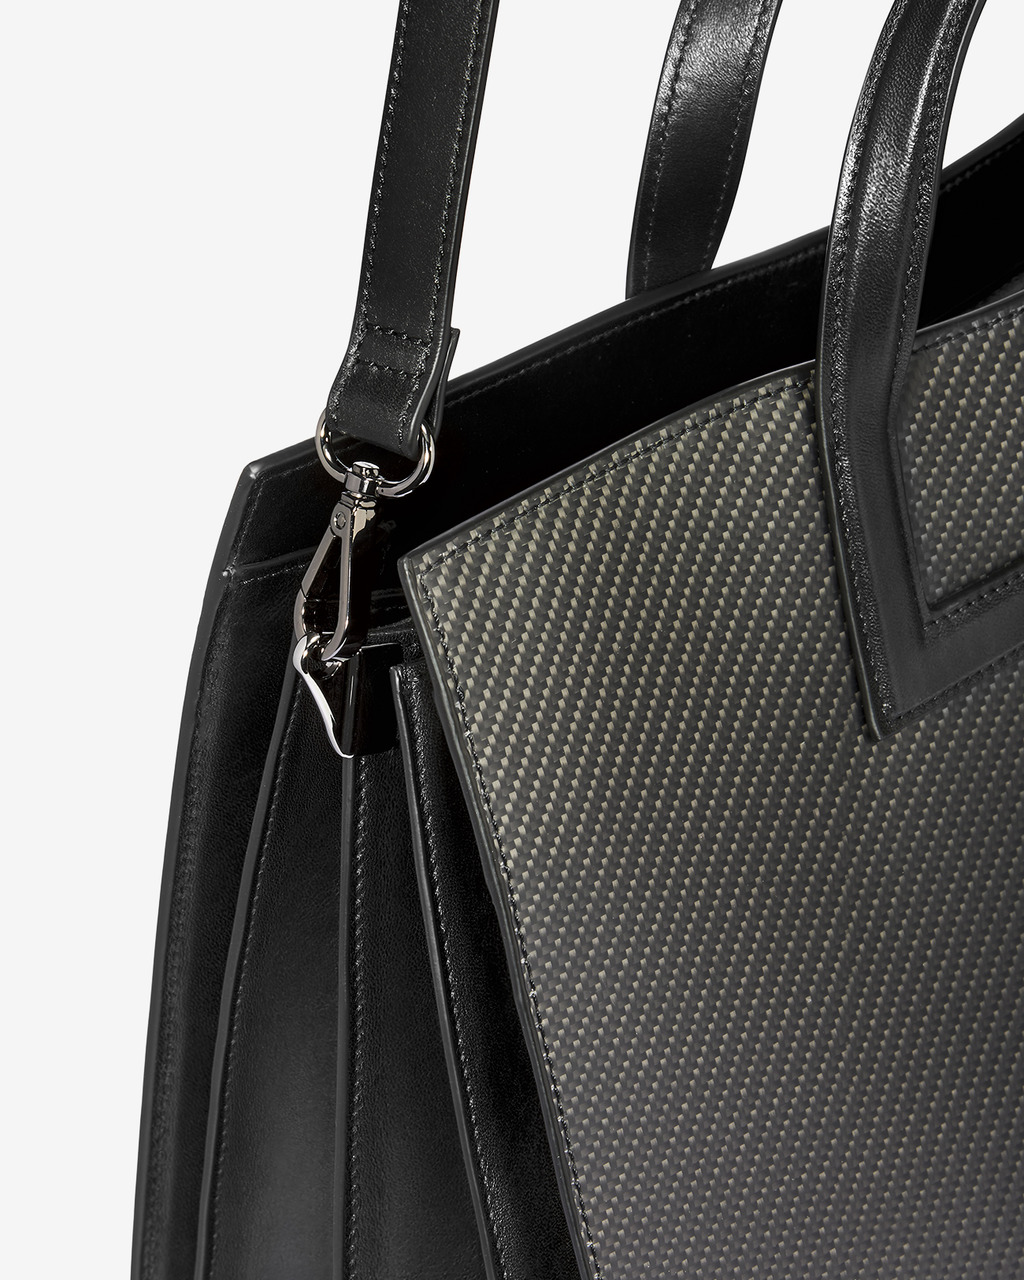 Carbon Fiber Executive Bag